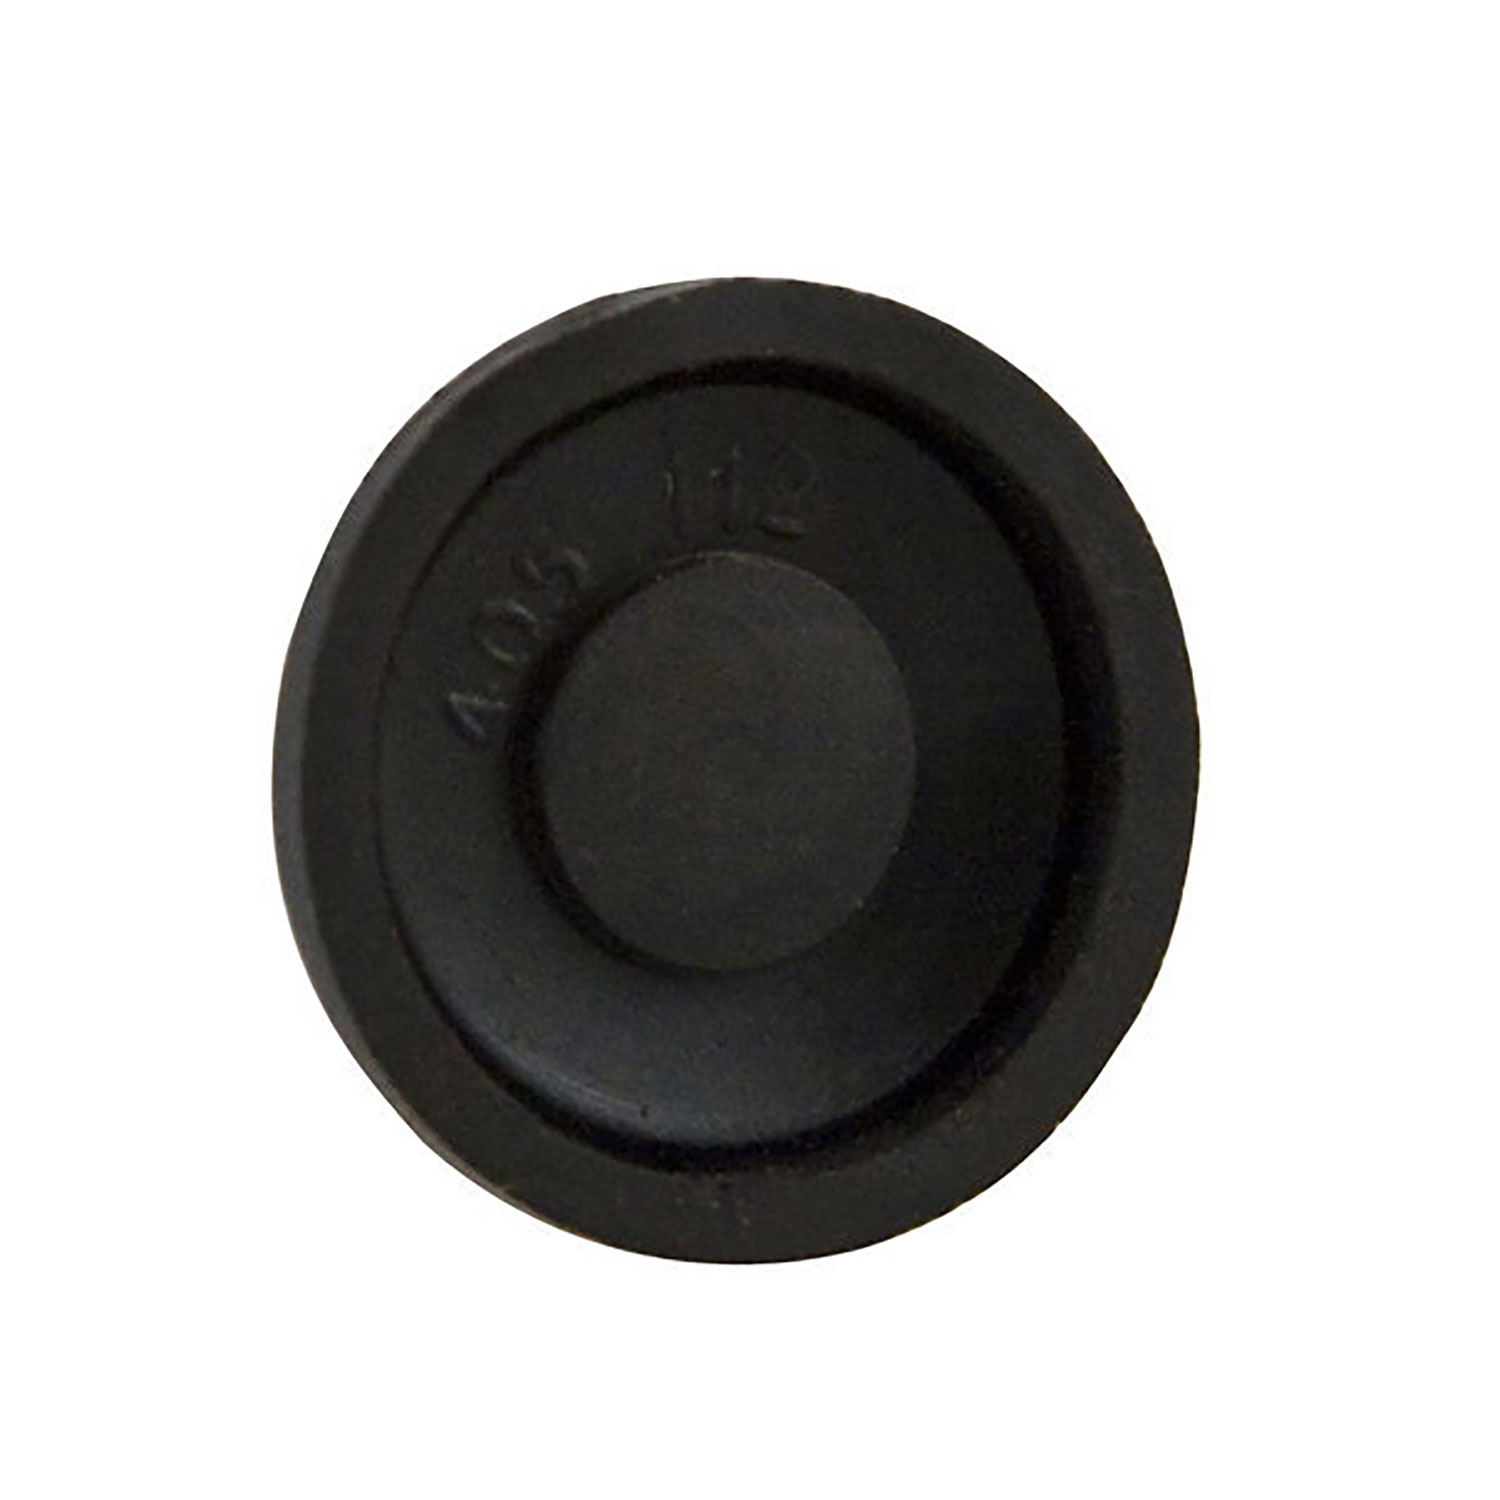 MagLite Replacemnt Switch Seal